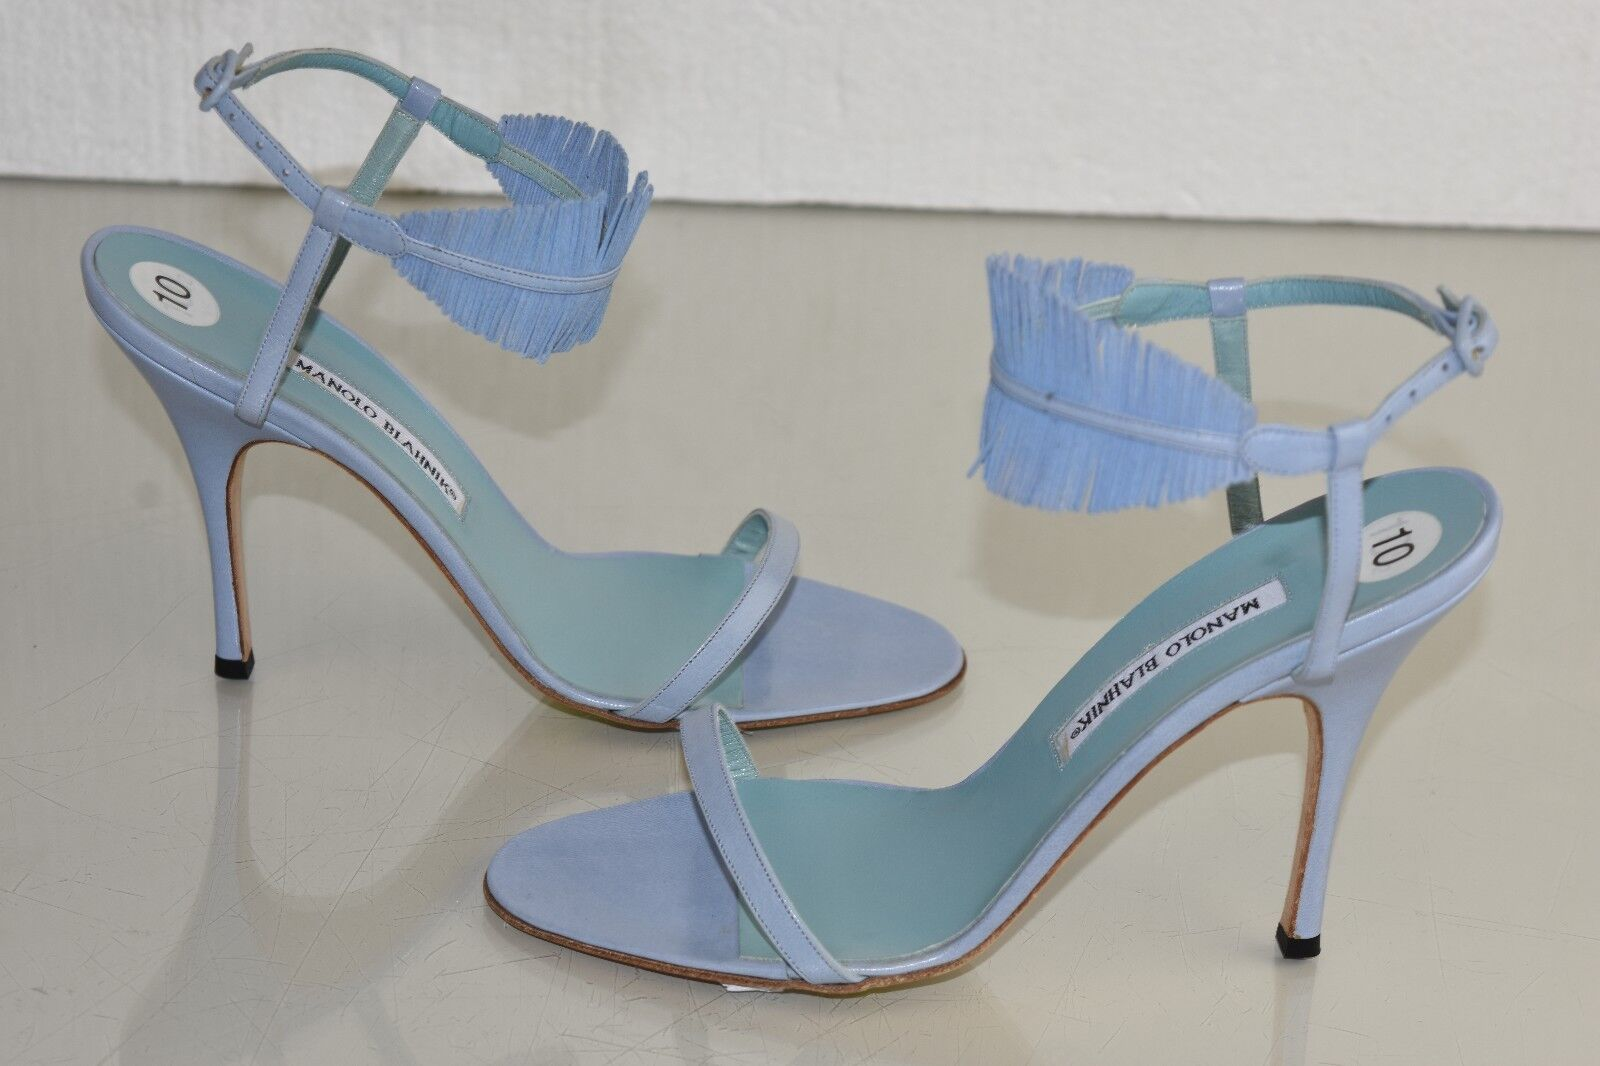 965 New Manolo Blahnik Sandals Light  bluee Heels Leather Strappy shoes 40